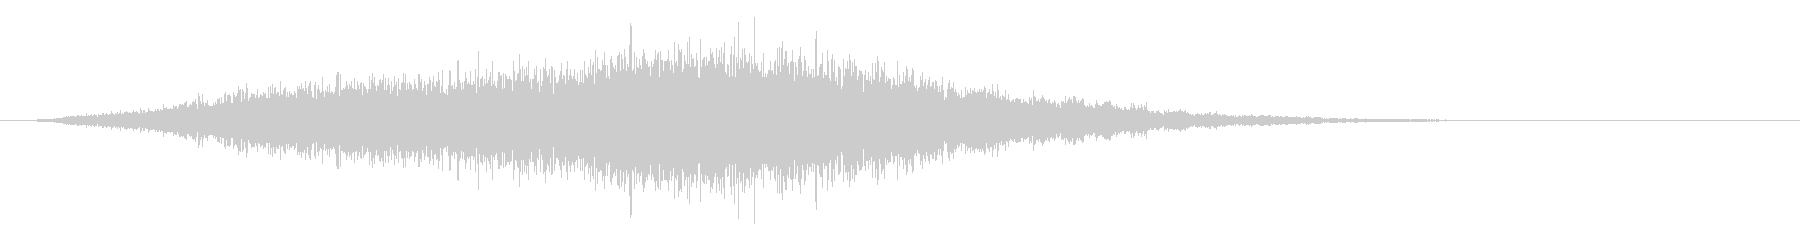 Magic and energy emit type A # 6's unreproduced waveform